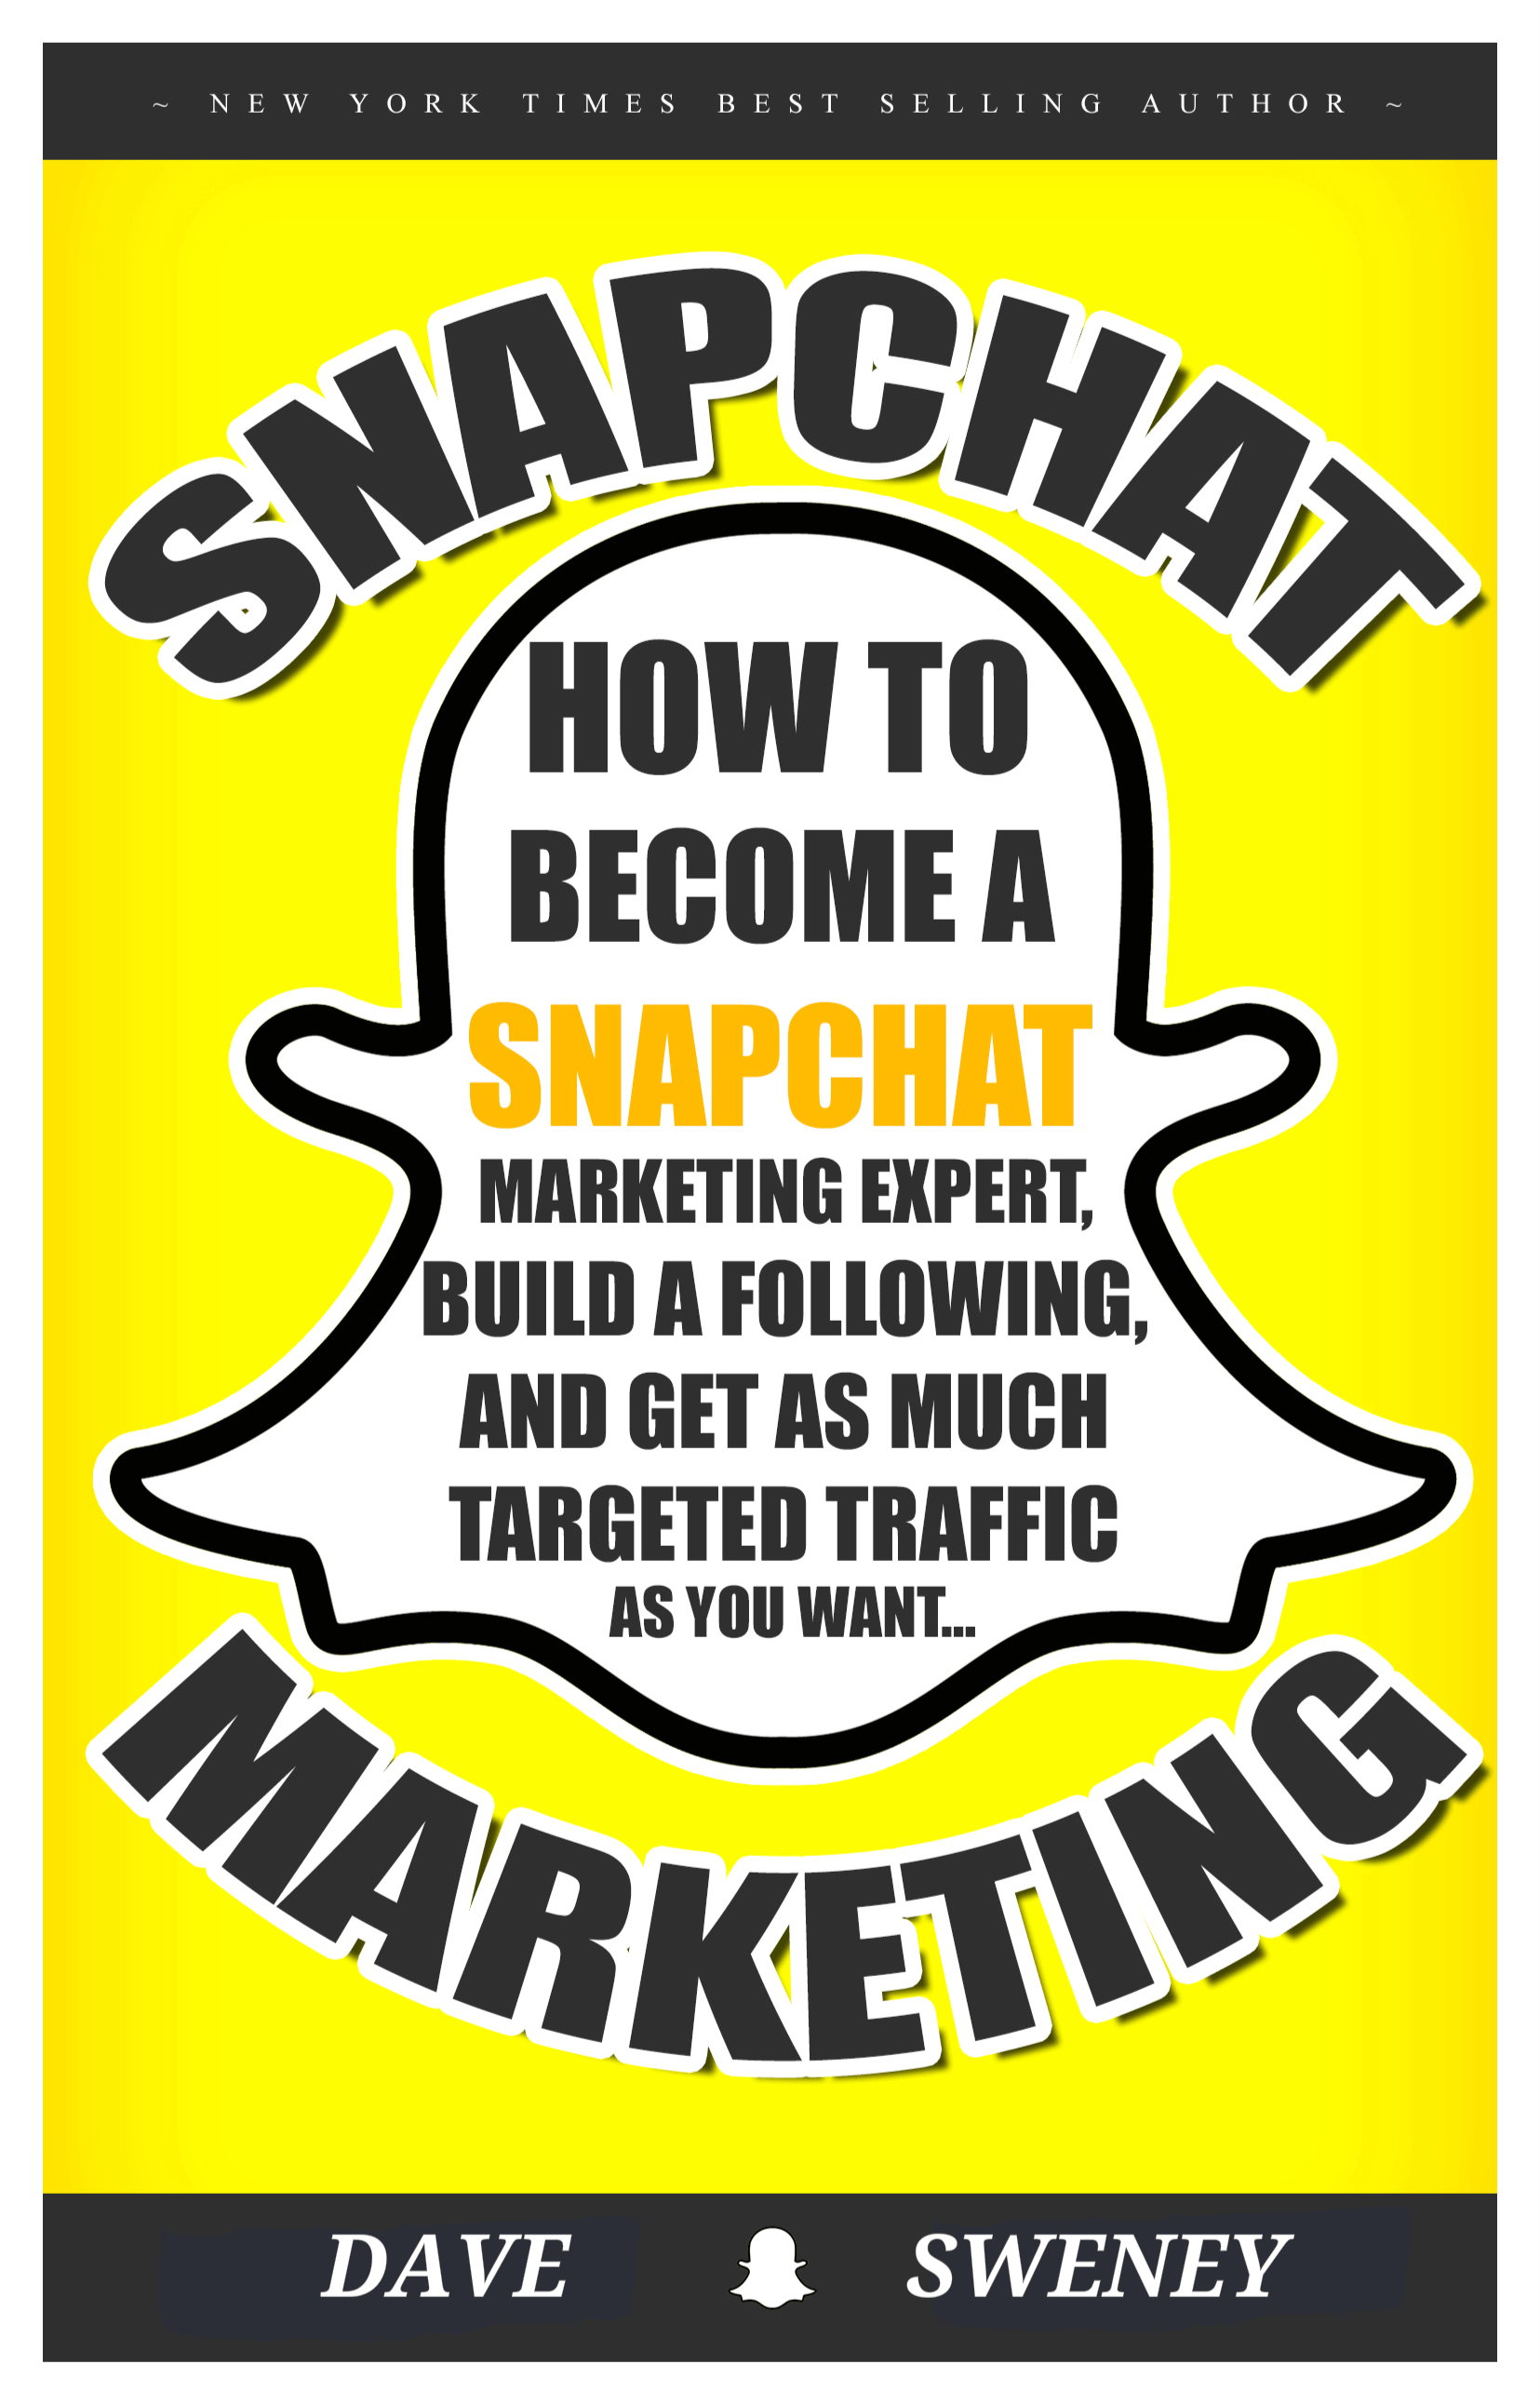 TRAINING Cover SnapChat - How to Effectively Use Snapchat to Produce Awesome Marketing Results